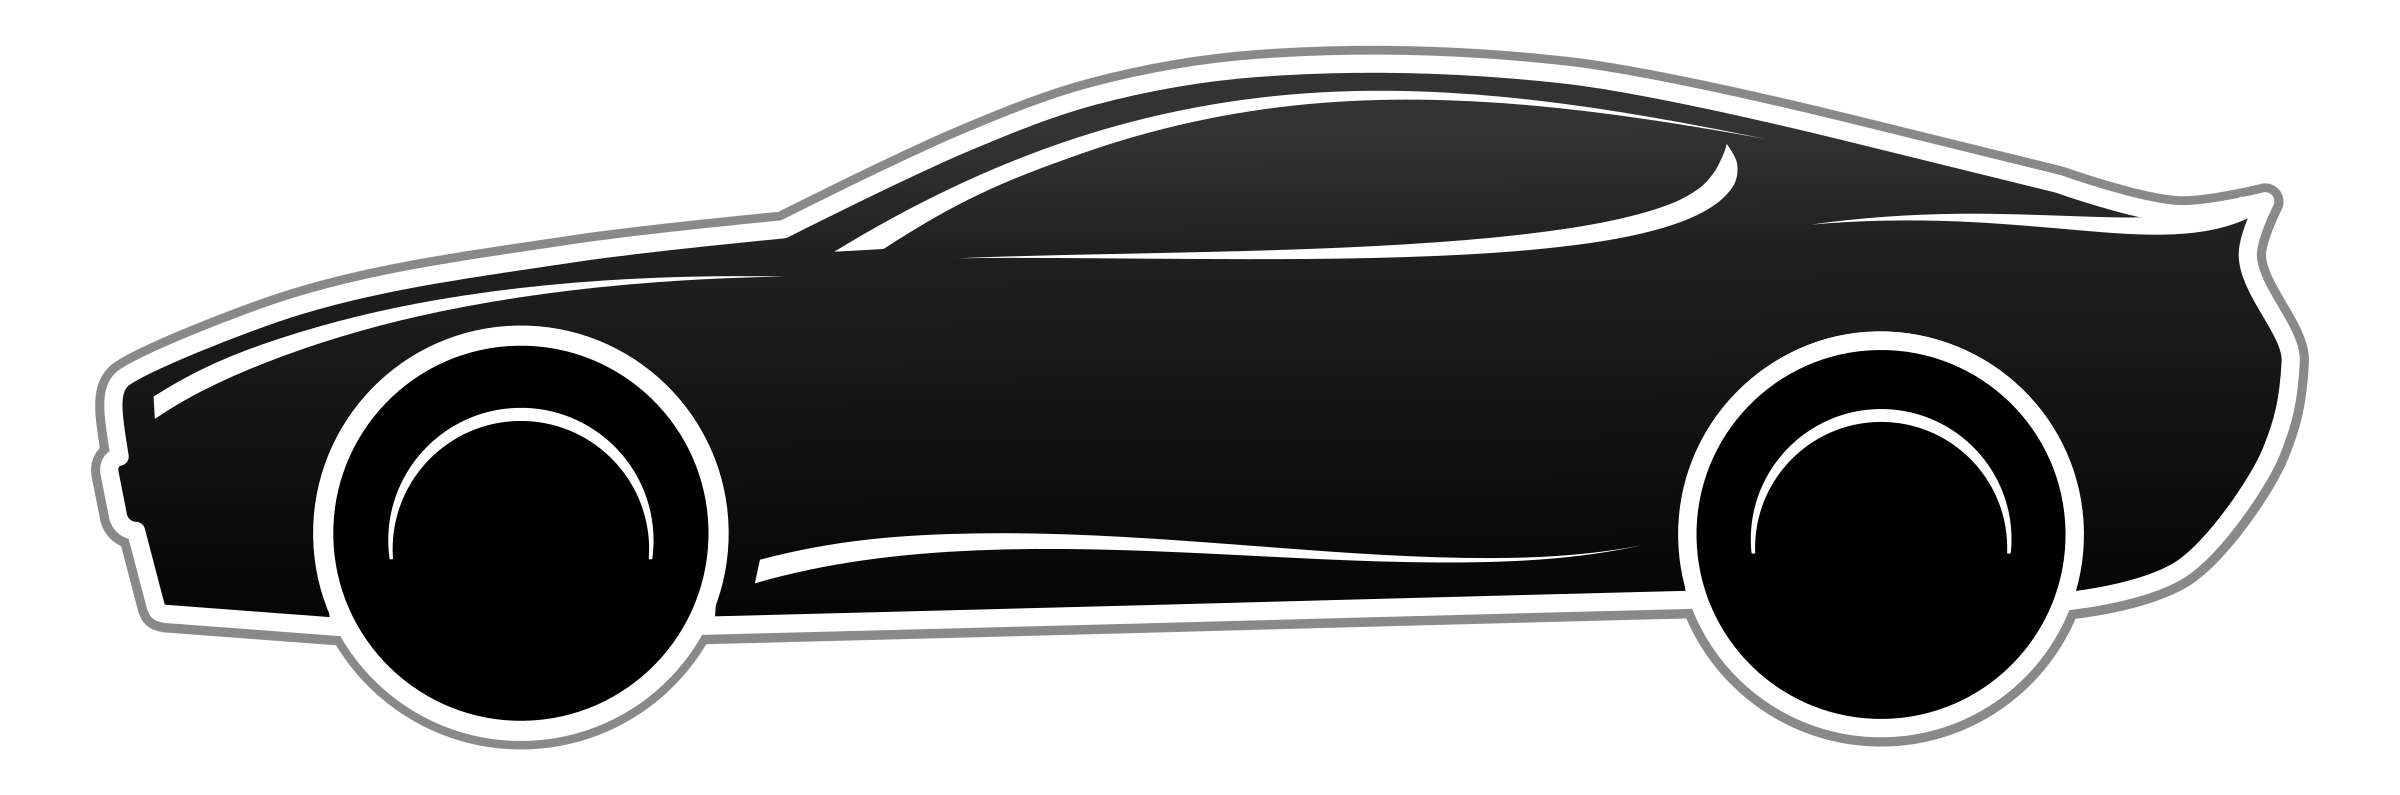 Semi svg black and white. Fast car png transparent